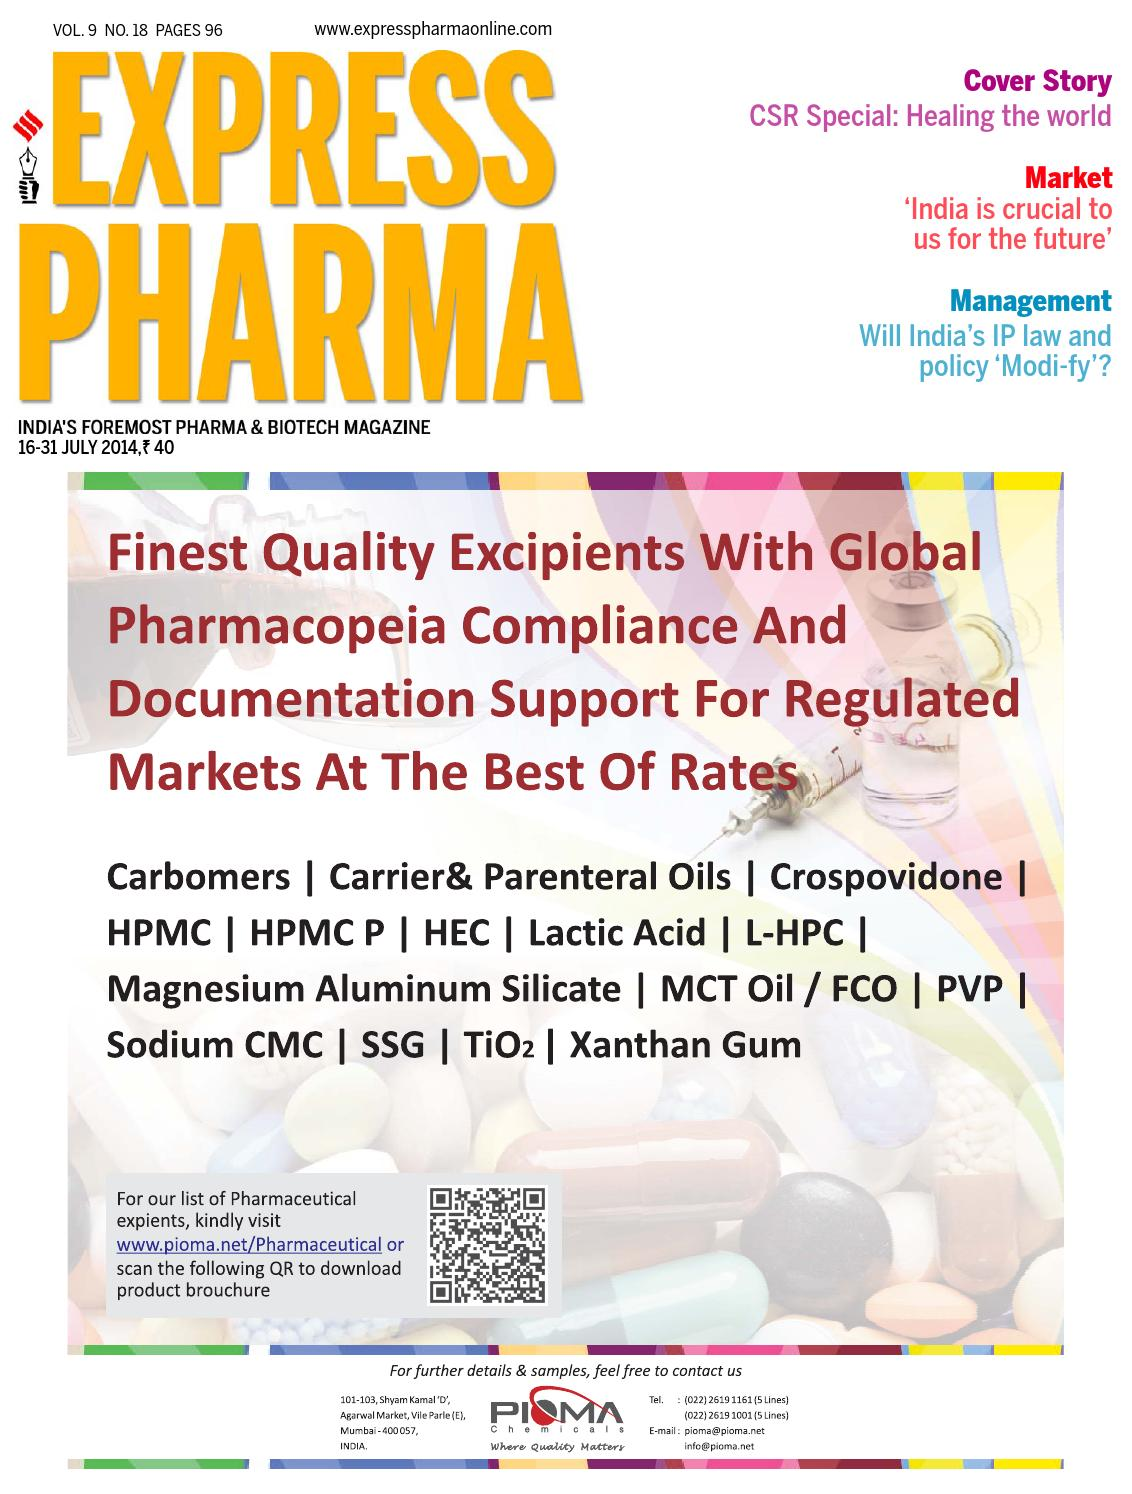 Express Pharma July 16-31, 2014 by Indian Express - issuu